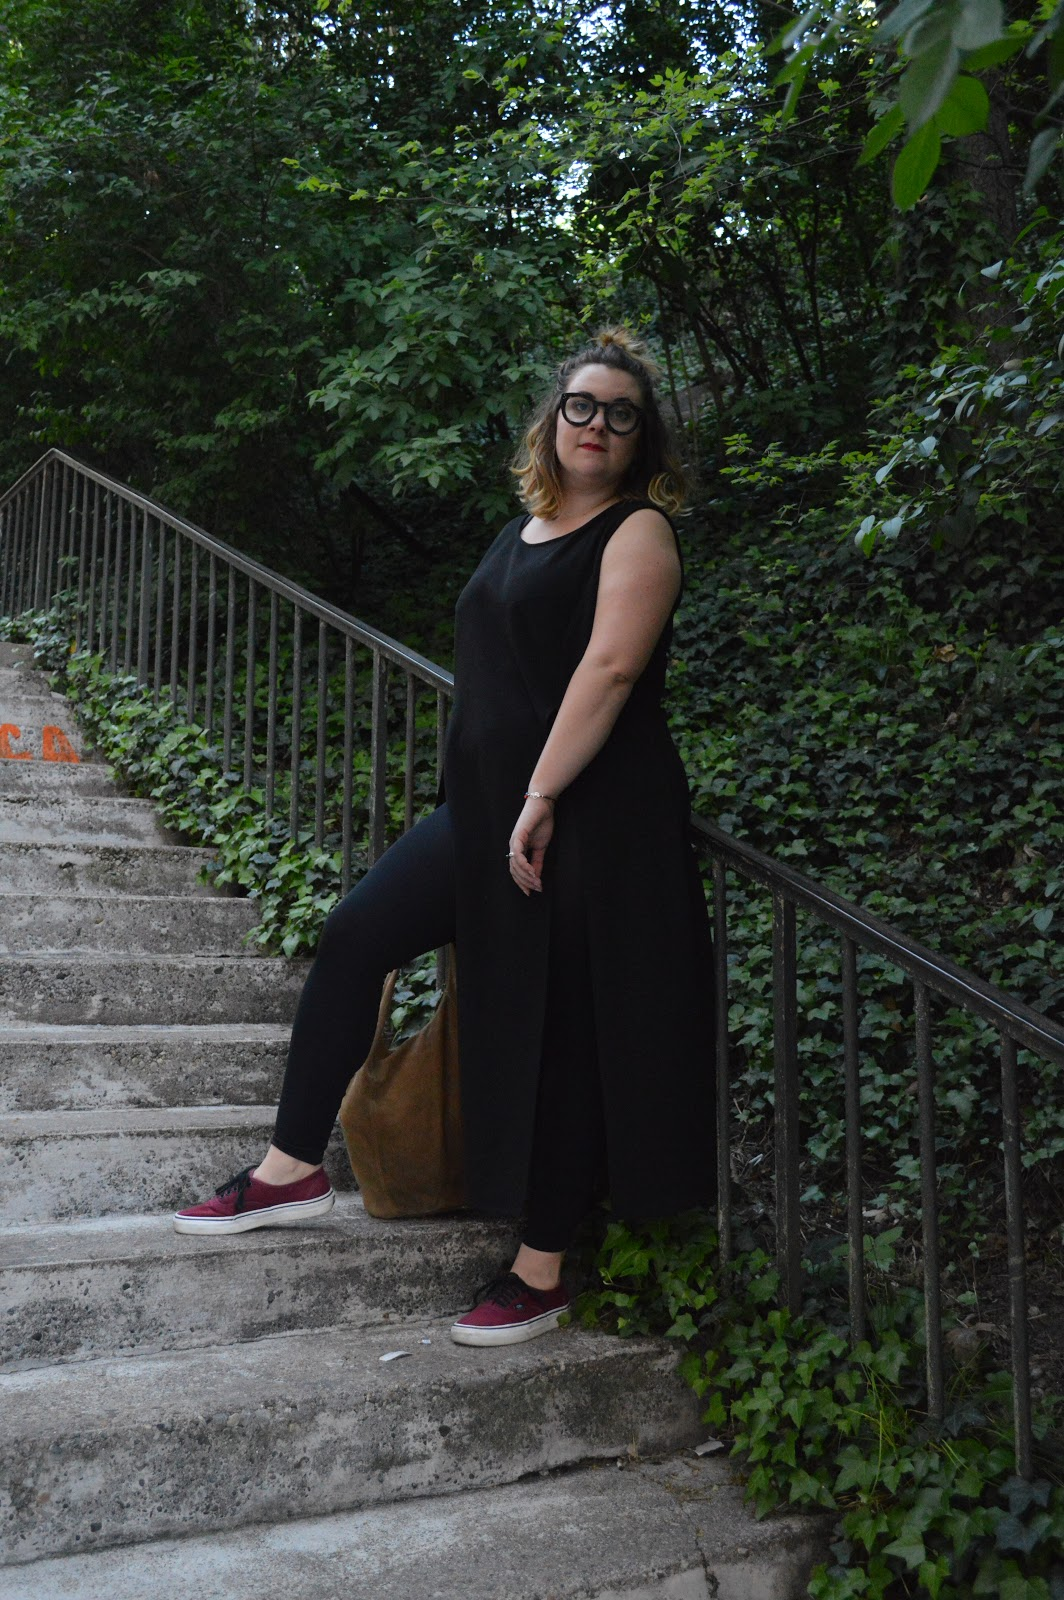 Blog, dodue stylée, +Size, humeur, caprice, revues,  body positive